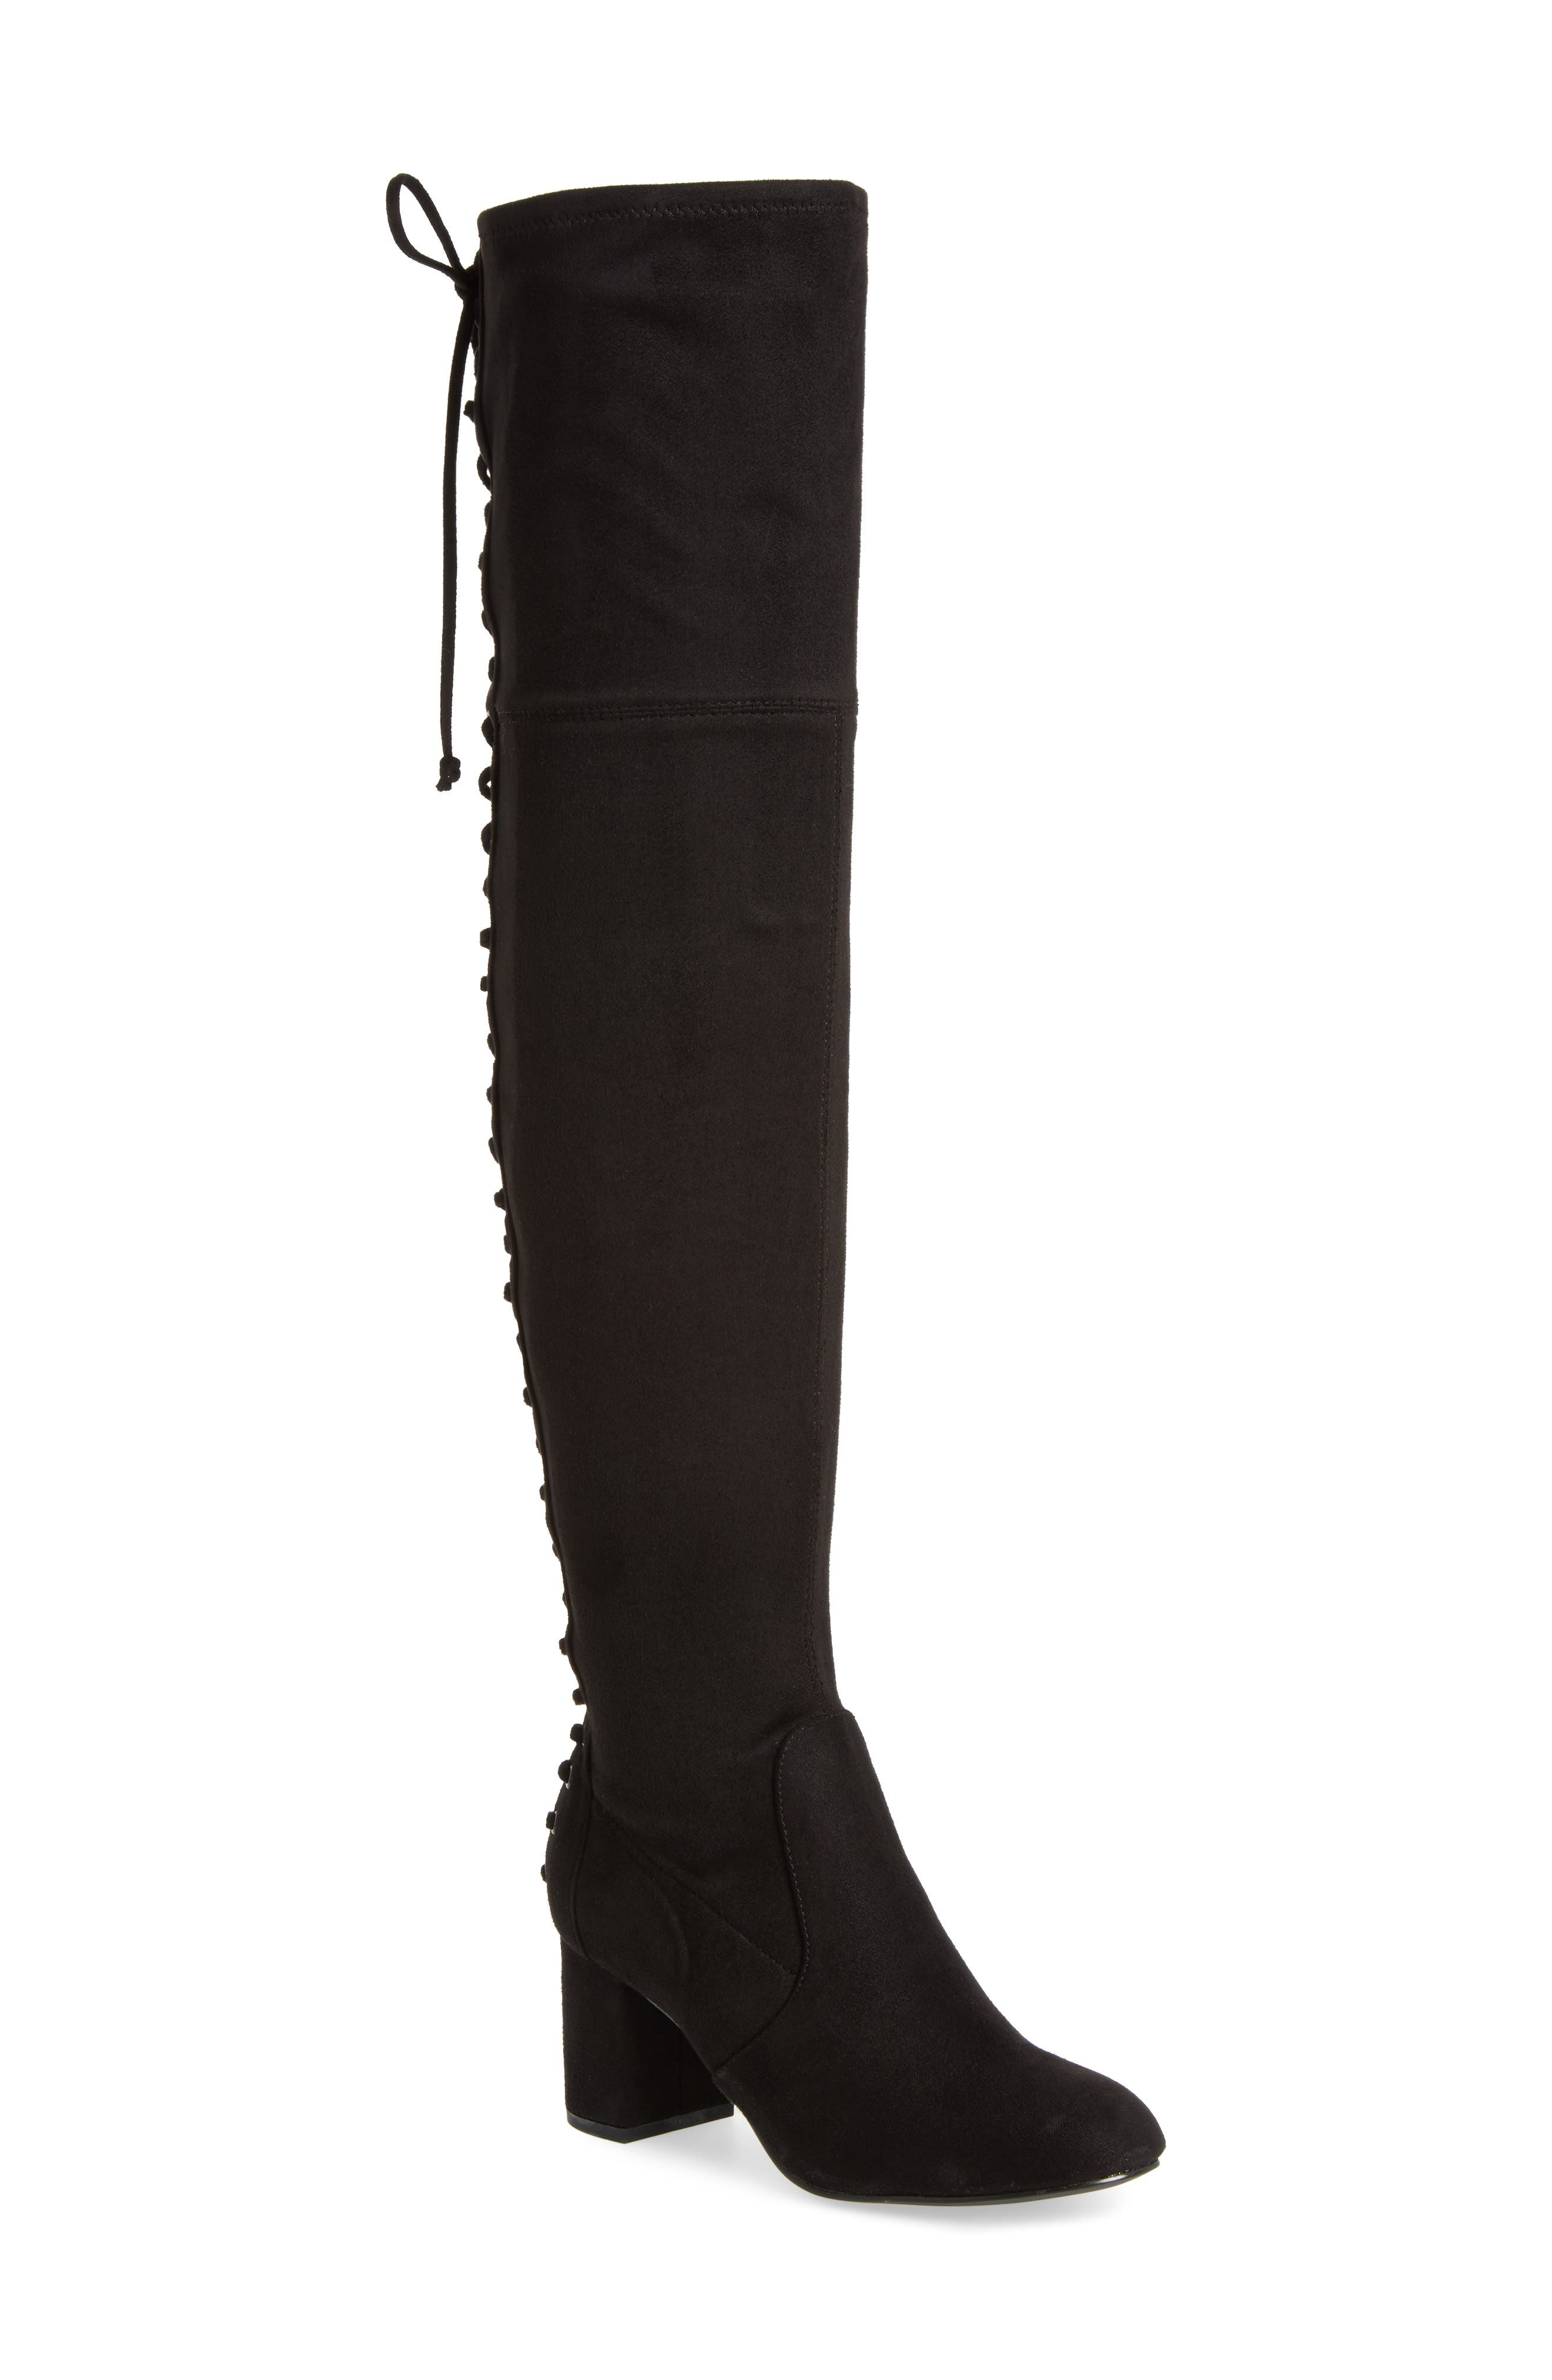 Ollie Over the Knee Boot,                         Main,                         color, Black Microsuede